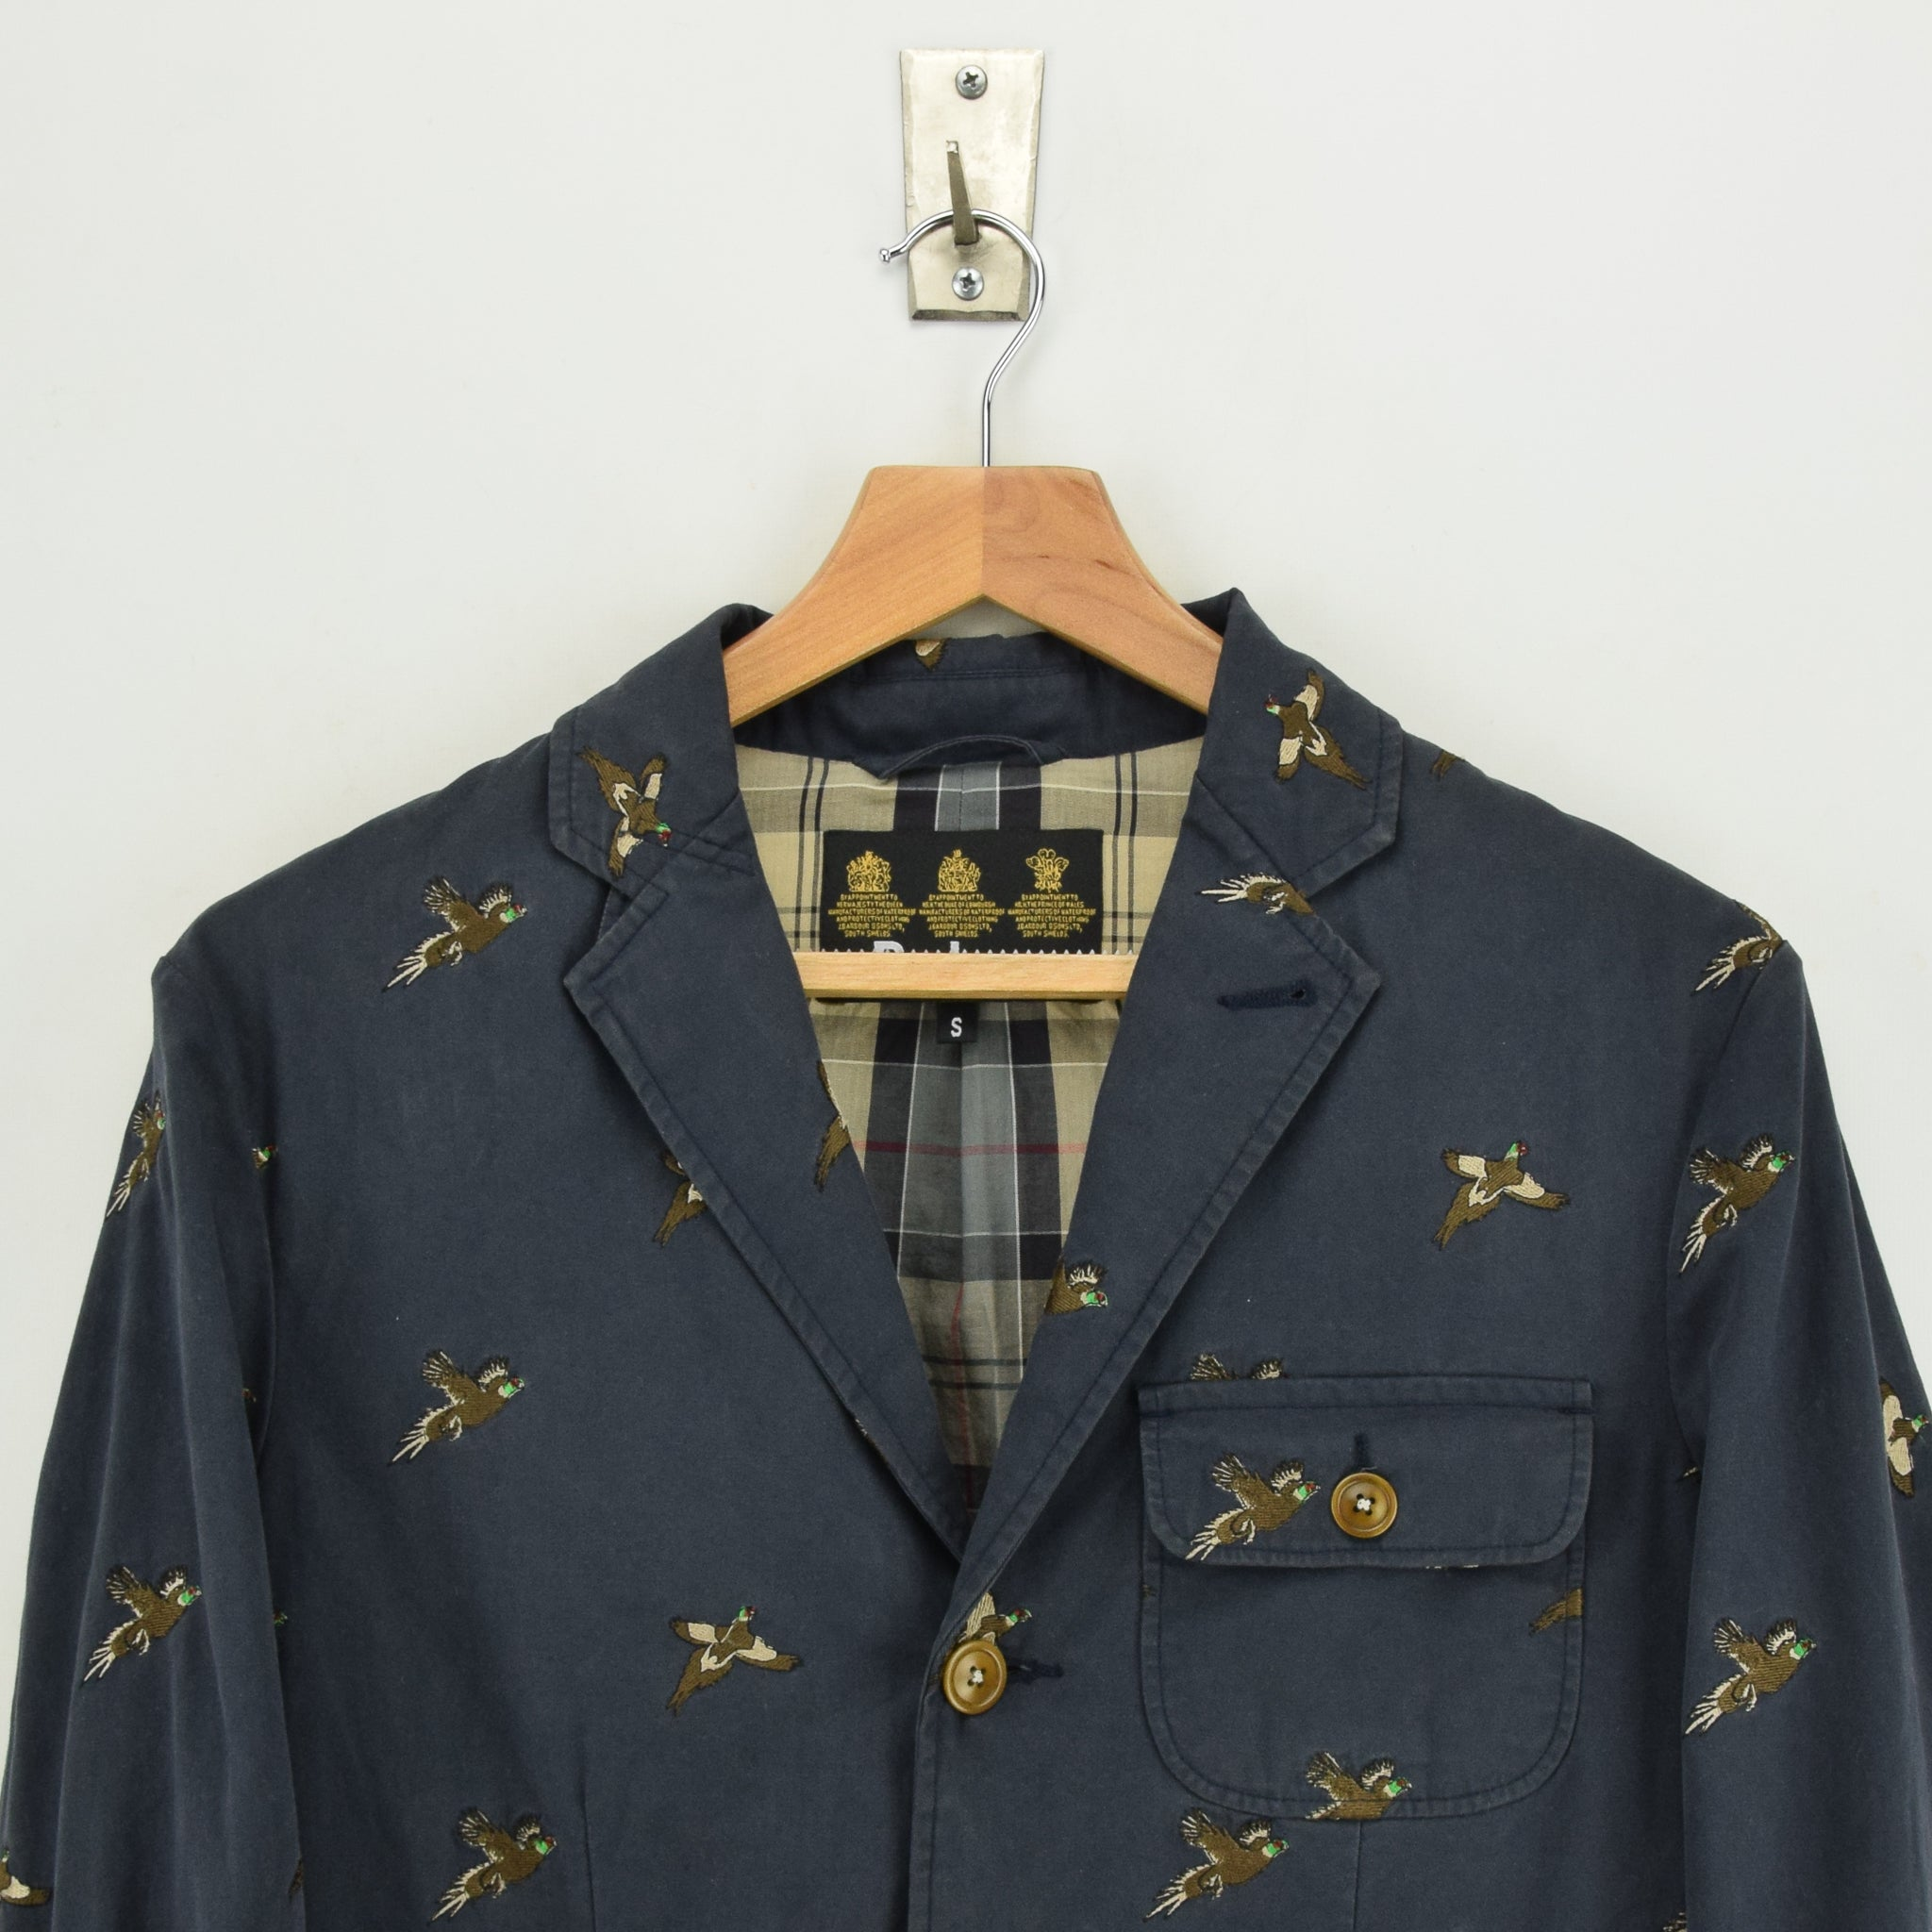 Barbour Navy Blue Cotton Blazer Jacket With Duck Print S chest